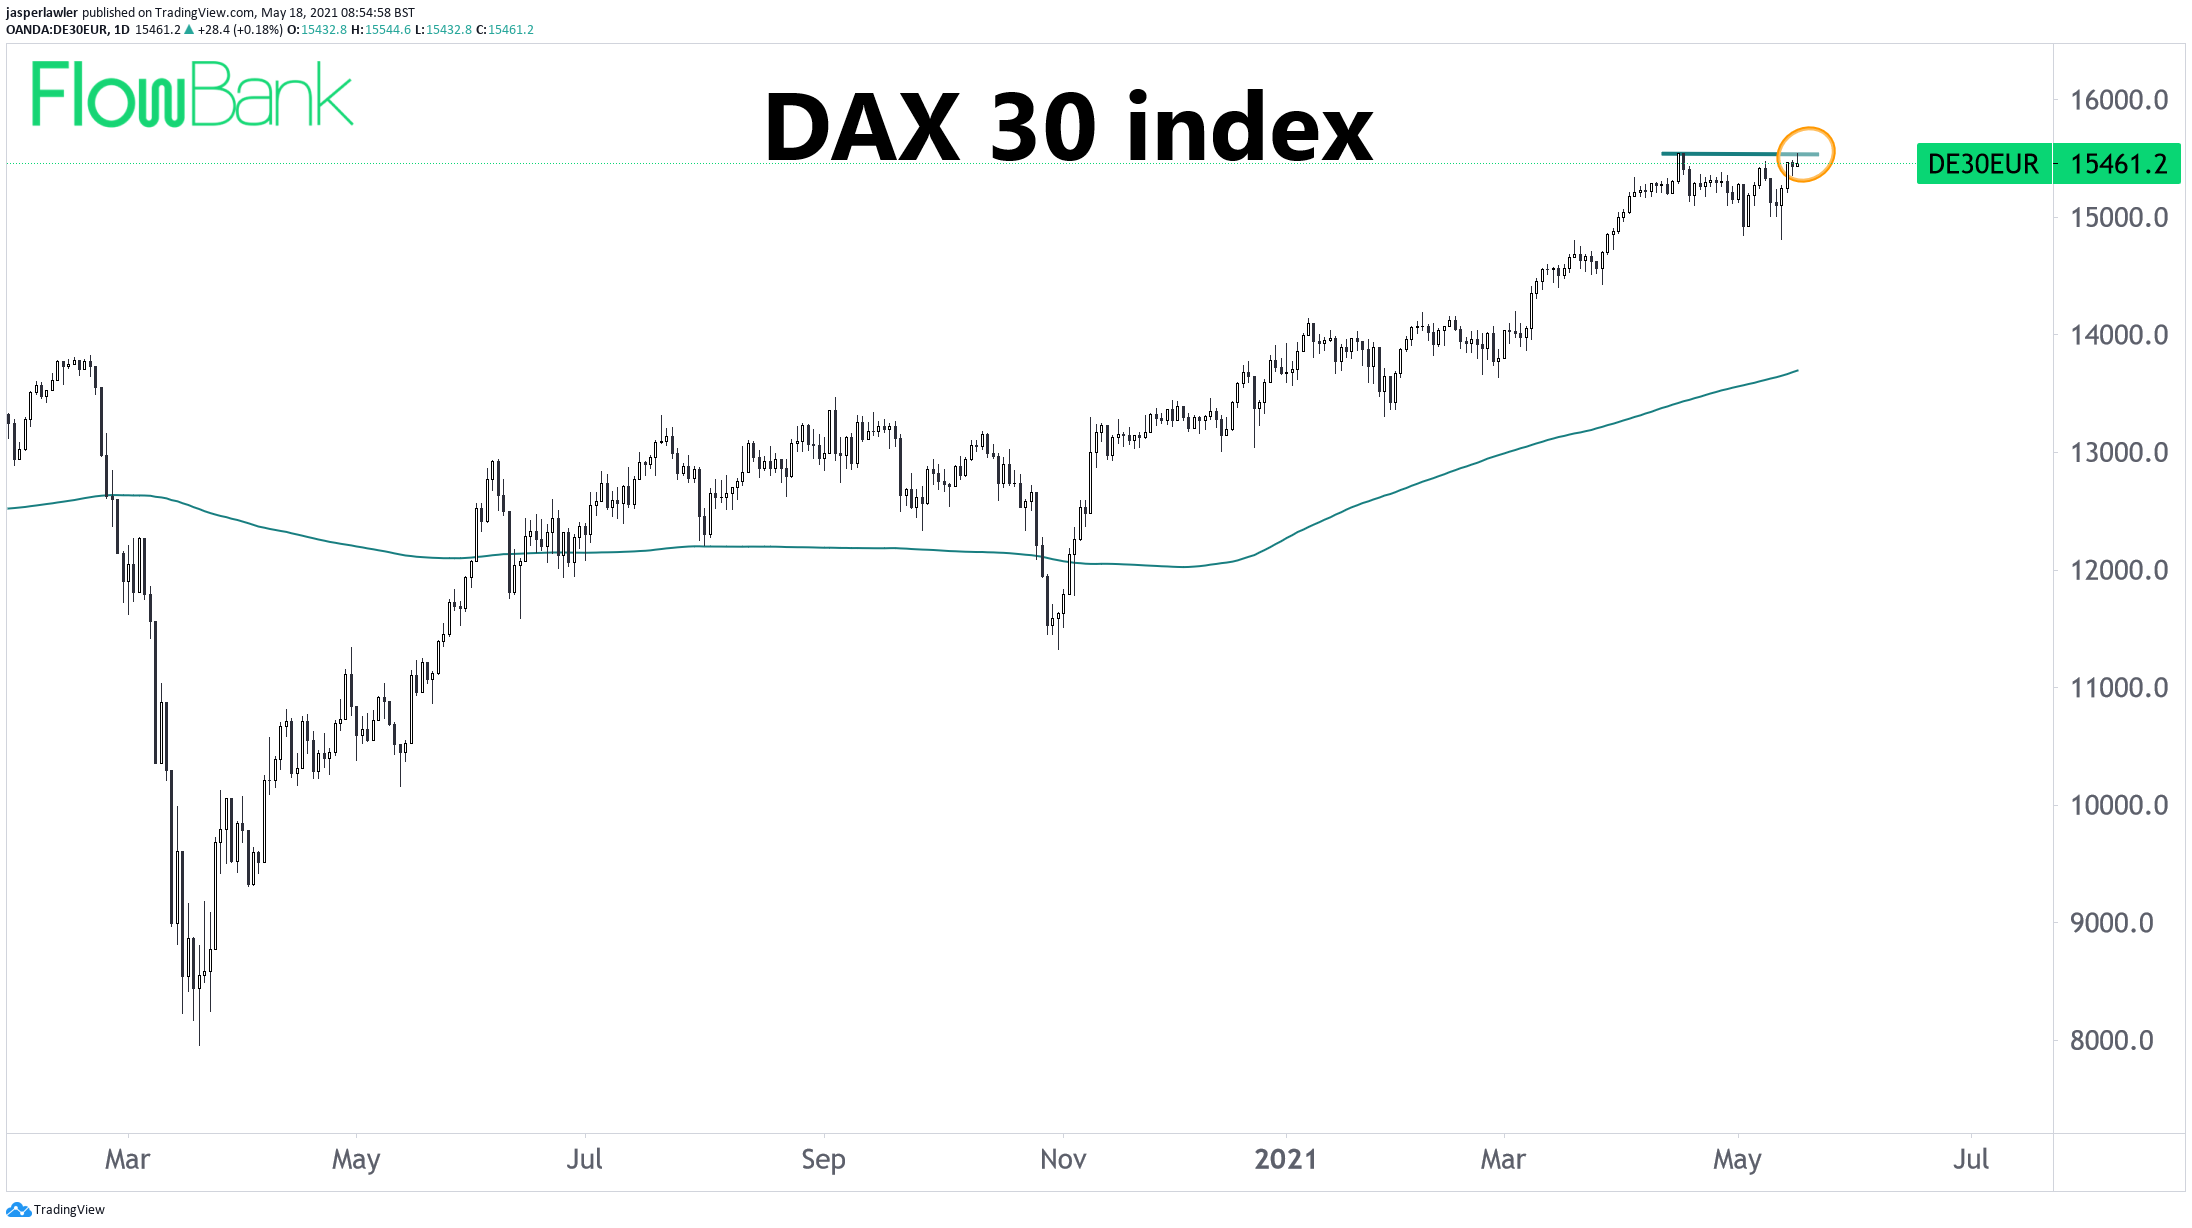 DAX stock index ekes out record intraday high after 1-month rest